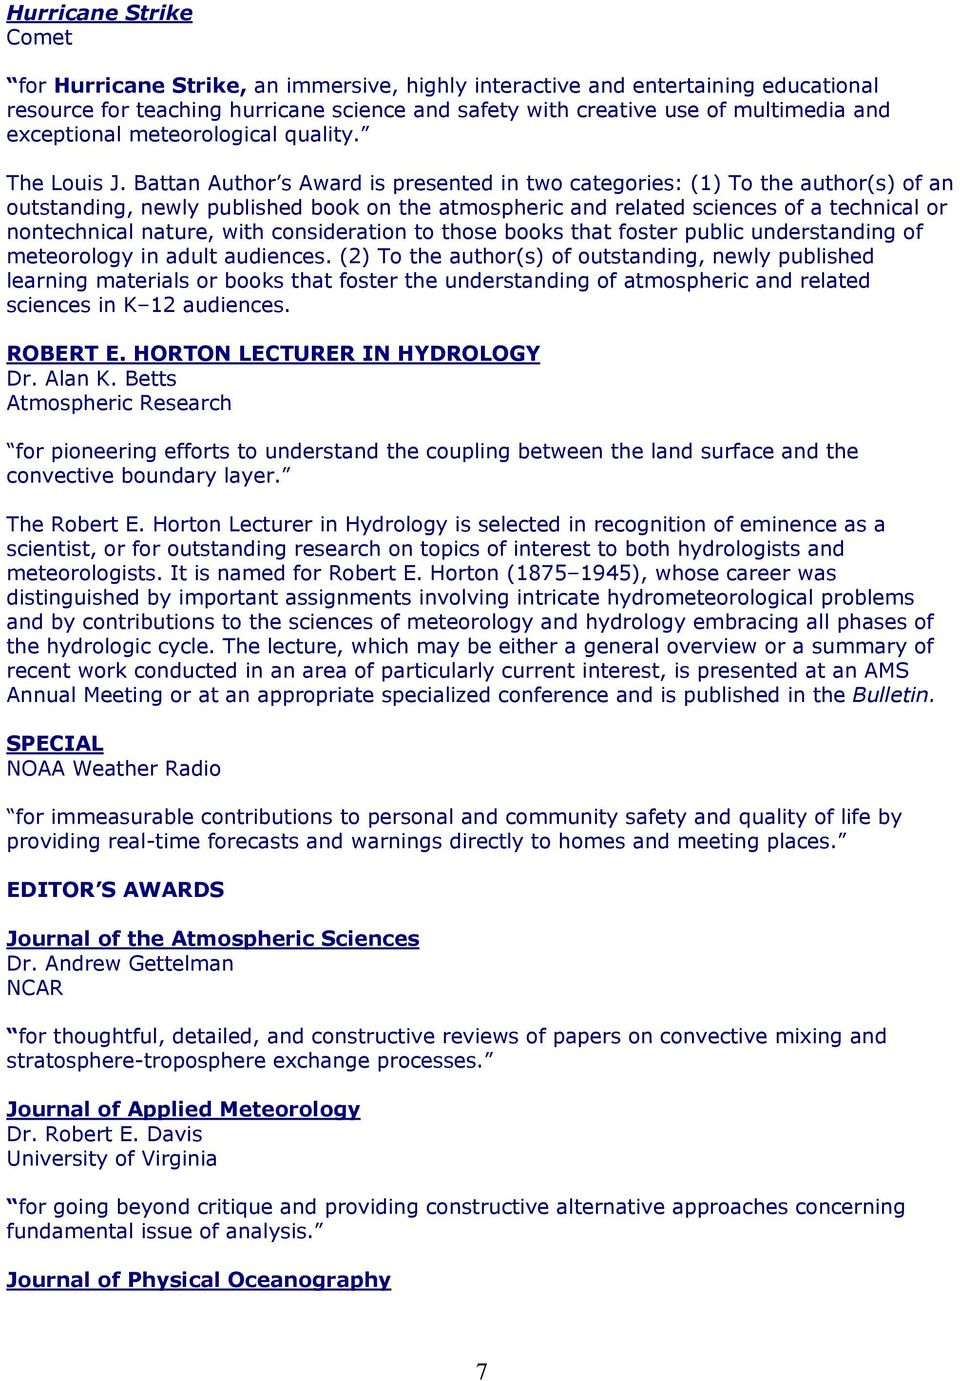 Battan Author s Award is presented in two categories: (1) To the author(s) of an outstanding, newly published book on the atmospheric and related sciences of a technical or nontechnical nature, with